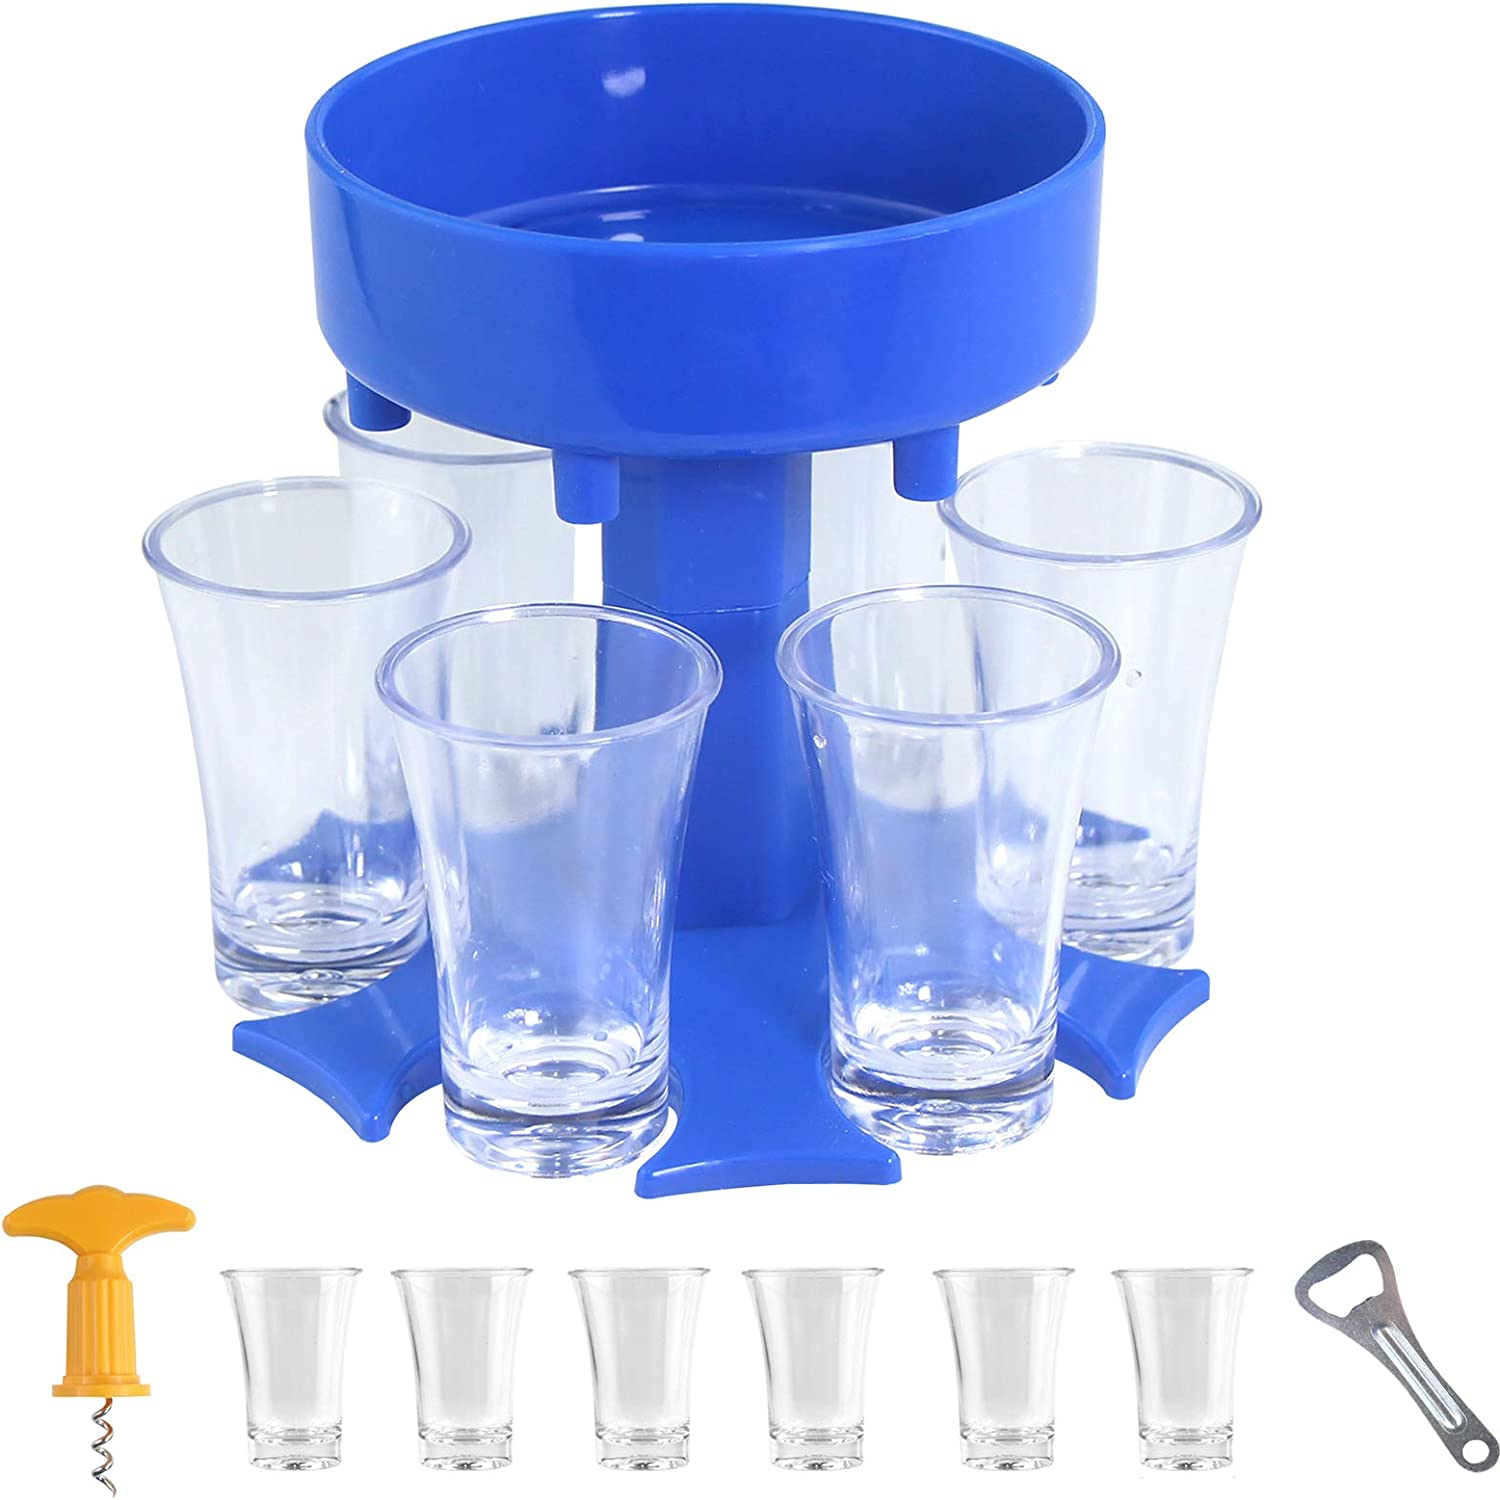 Super beauty product restock quality top 6 Shot Buddy Dispenser and with New product! New type Glasses,Multiple Sho Holder